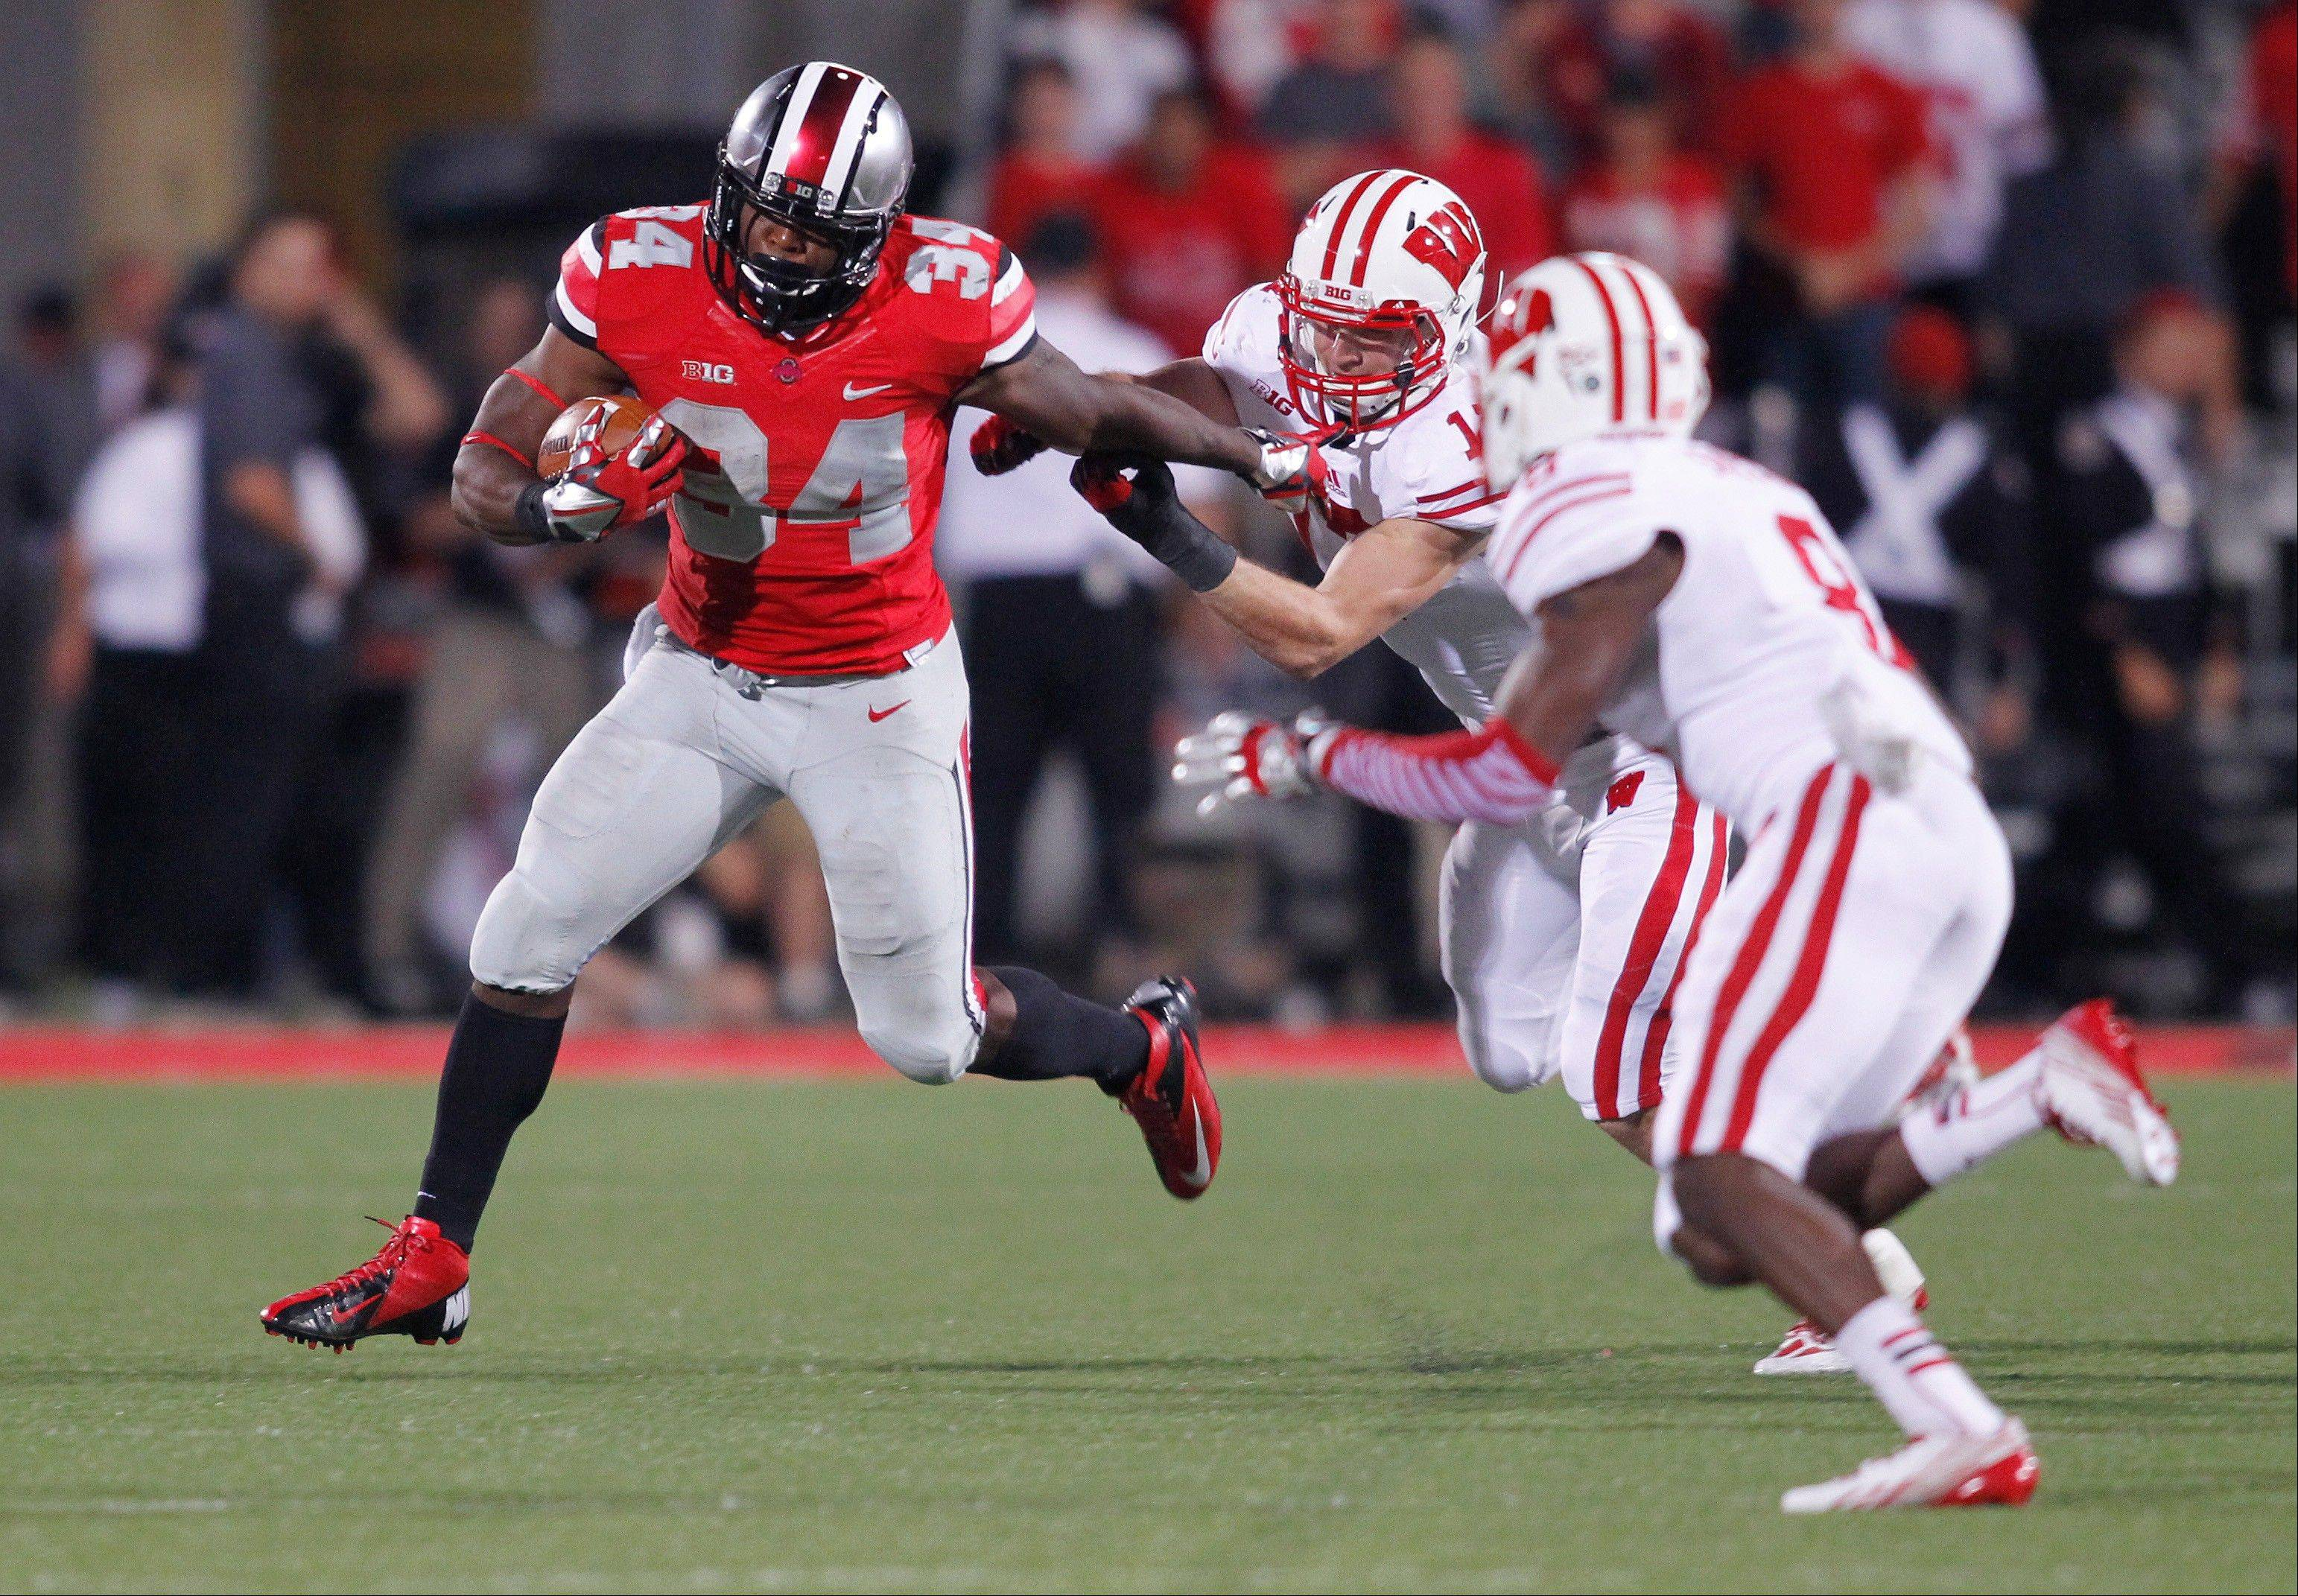 Ohio State running back Carlos Hyde tries to get around Wisconsin defenders during the fourth quarter of the Sept. 28 game in Columbus, Ohio. After a long weekend at home over the bye week, Hyde and the Buckeyes are getting serious heading into Saturday�s home game against Iowa.